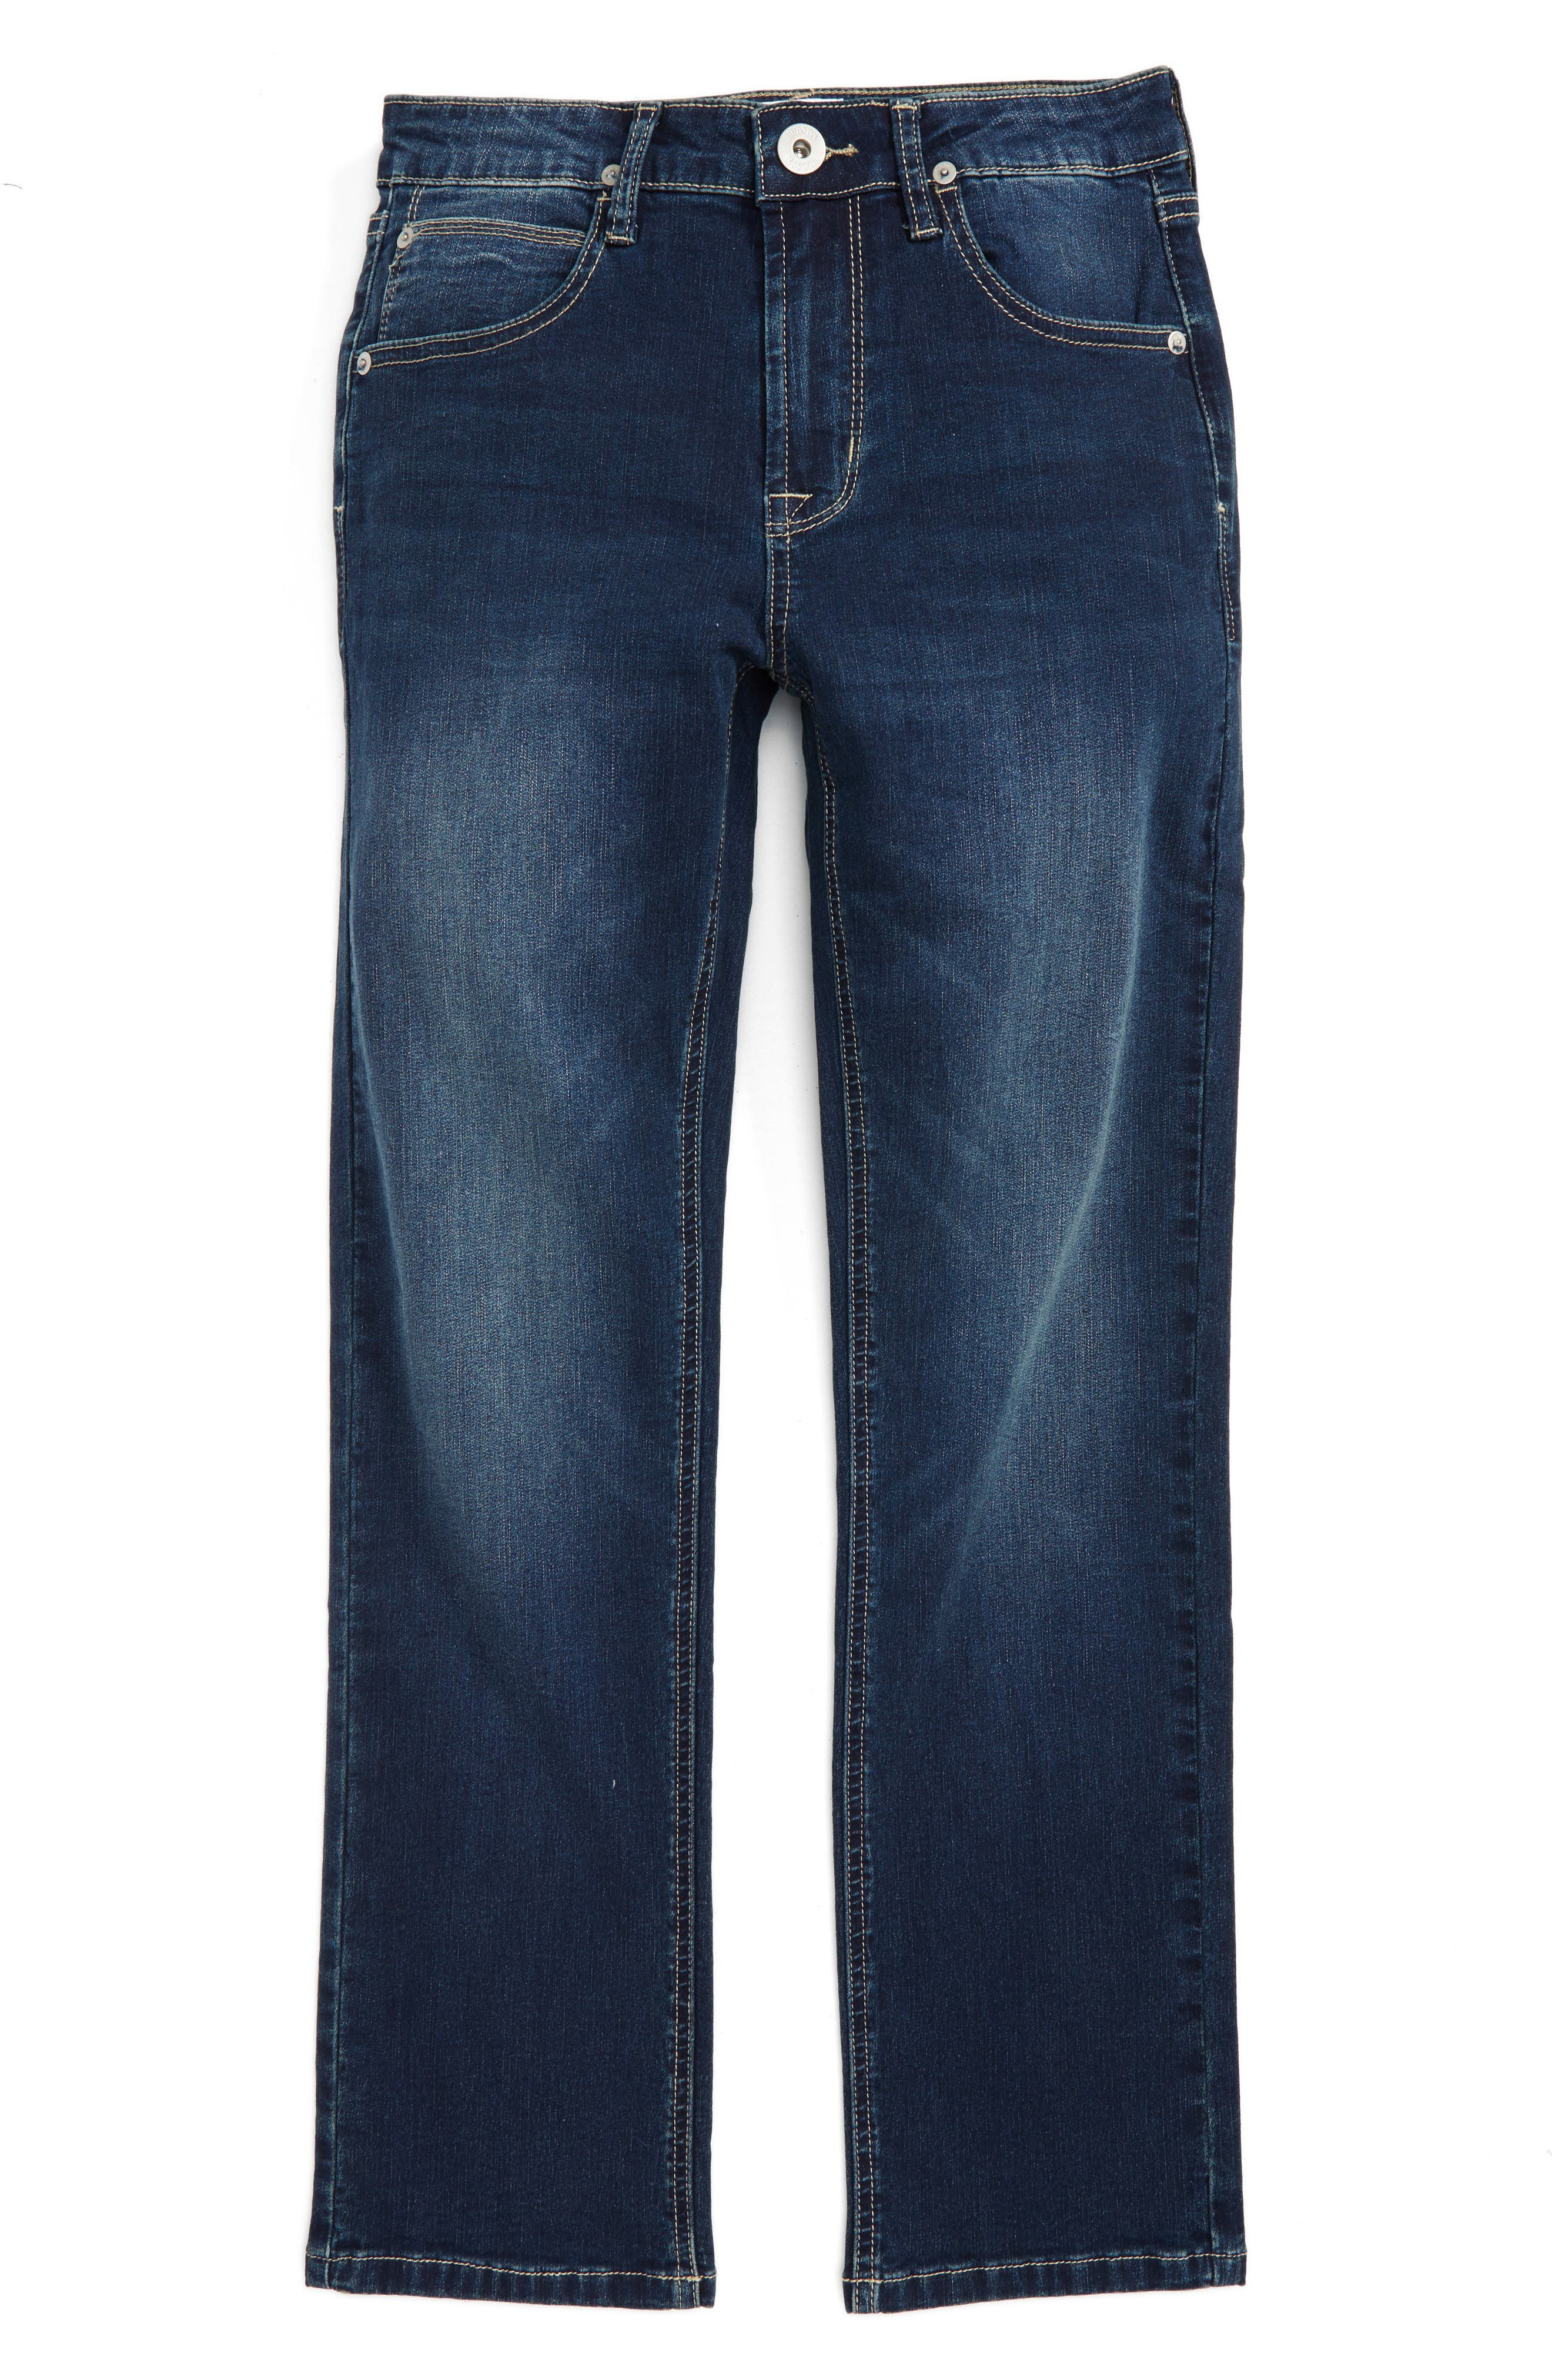 Alternate Image 1 Selected - Hudson Kids French Terry Pants (Toddler Boys, Little Boys & Big Boys)